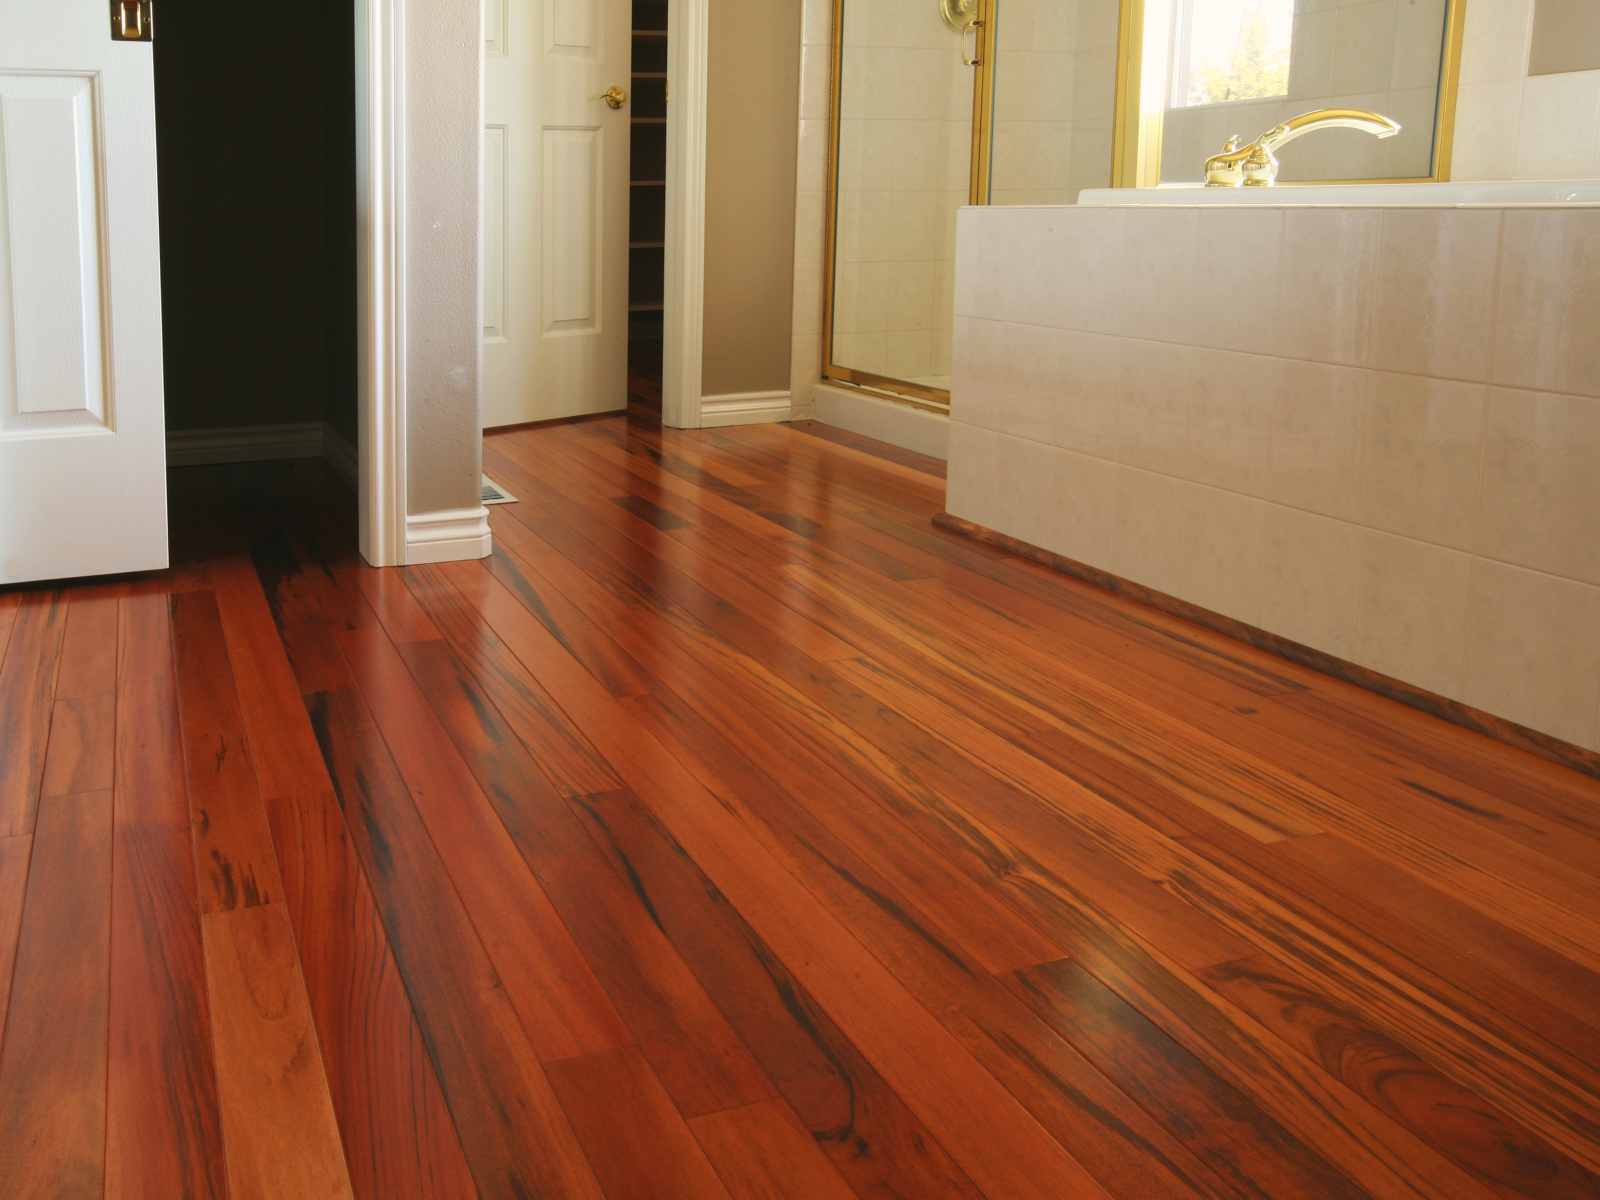 Laminate Tile Flooring : Bamboo flooring eco friendly for your home